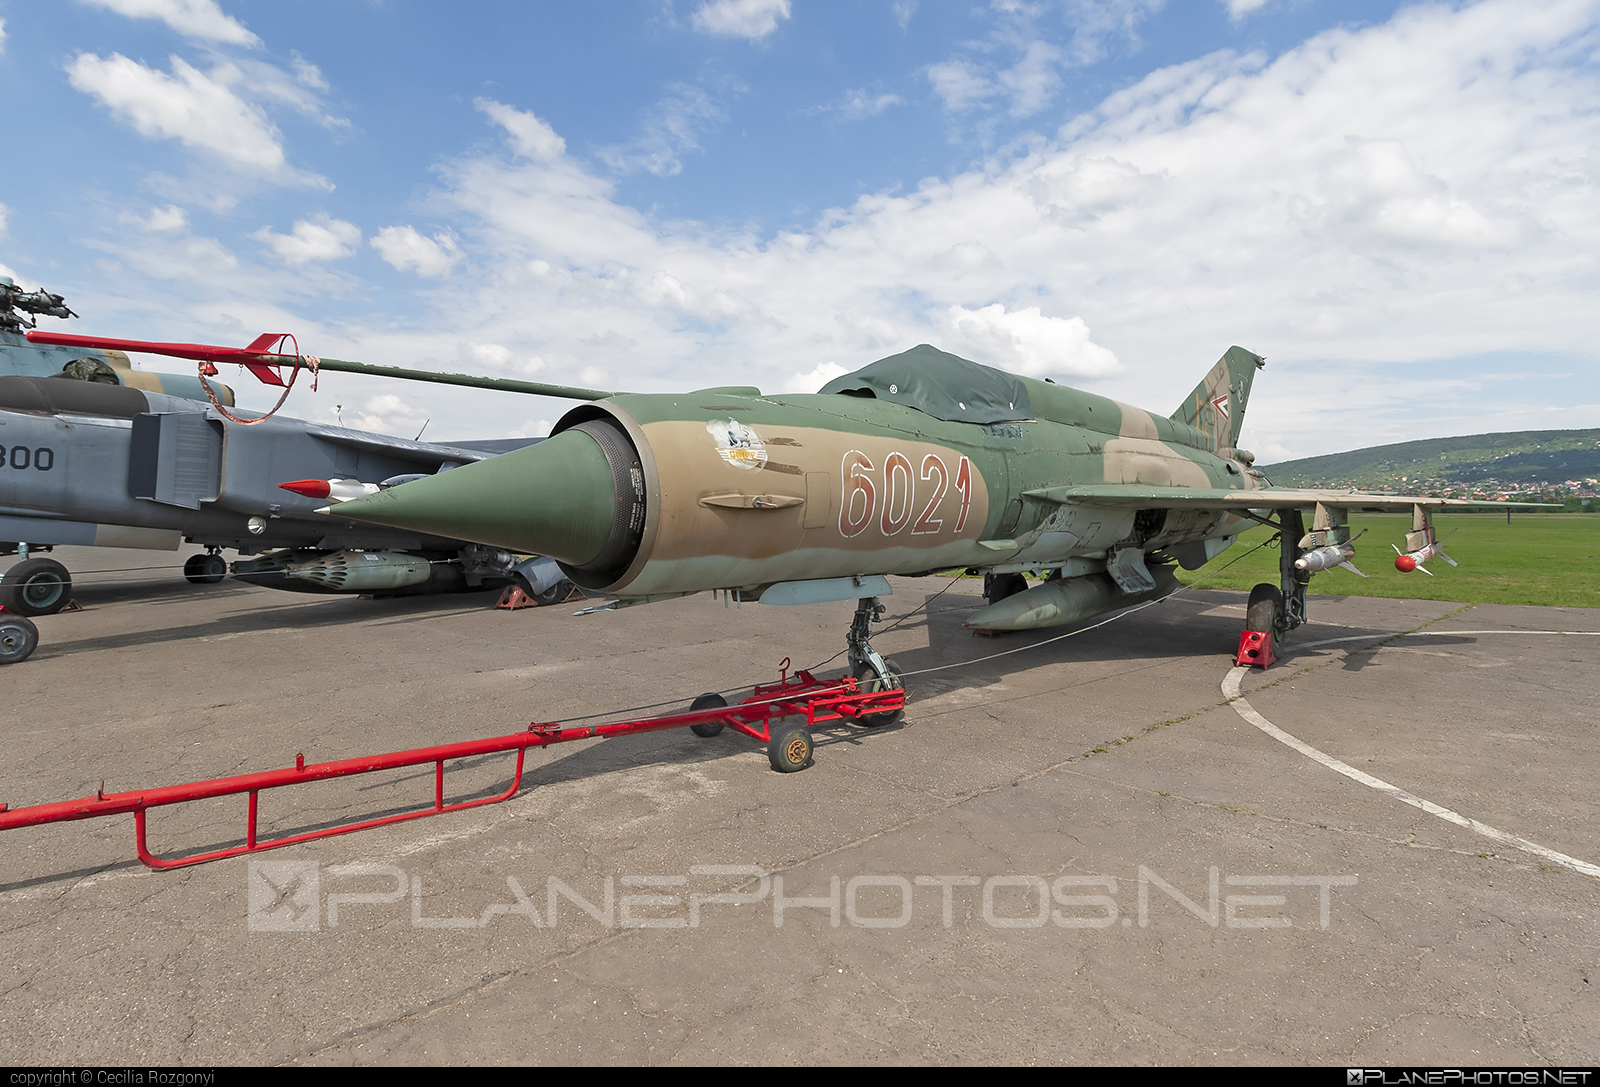 Mikoyan-Gurevich MiG-21bis - 6021 operated by Magyar Légierő (Hungarian Air Force) #hungarianairforce #magyarlegiero #mig #mig21 #mig21bis #mikoyangurevich